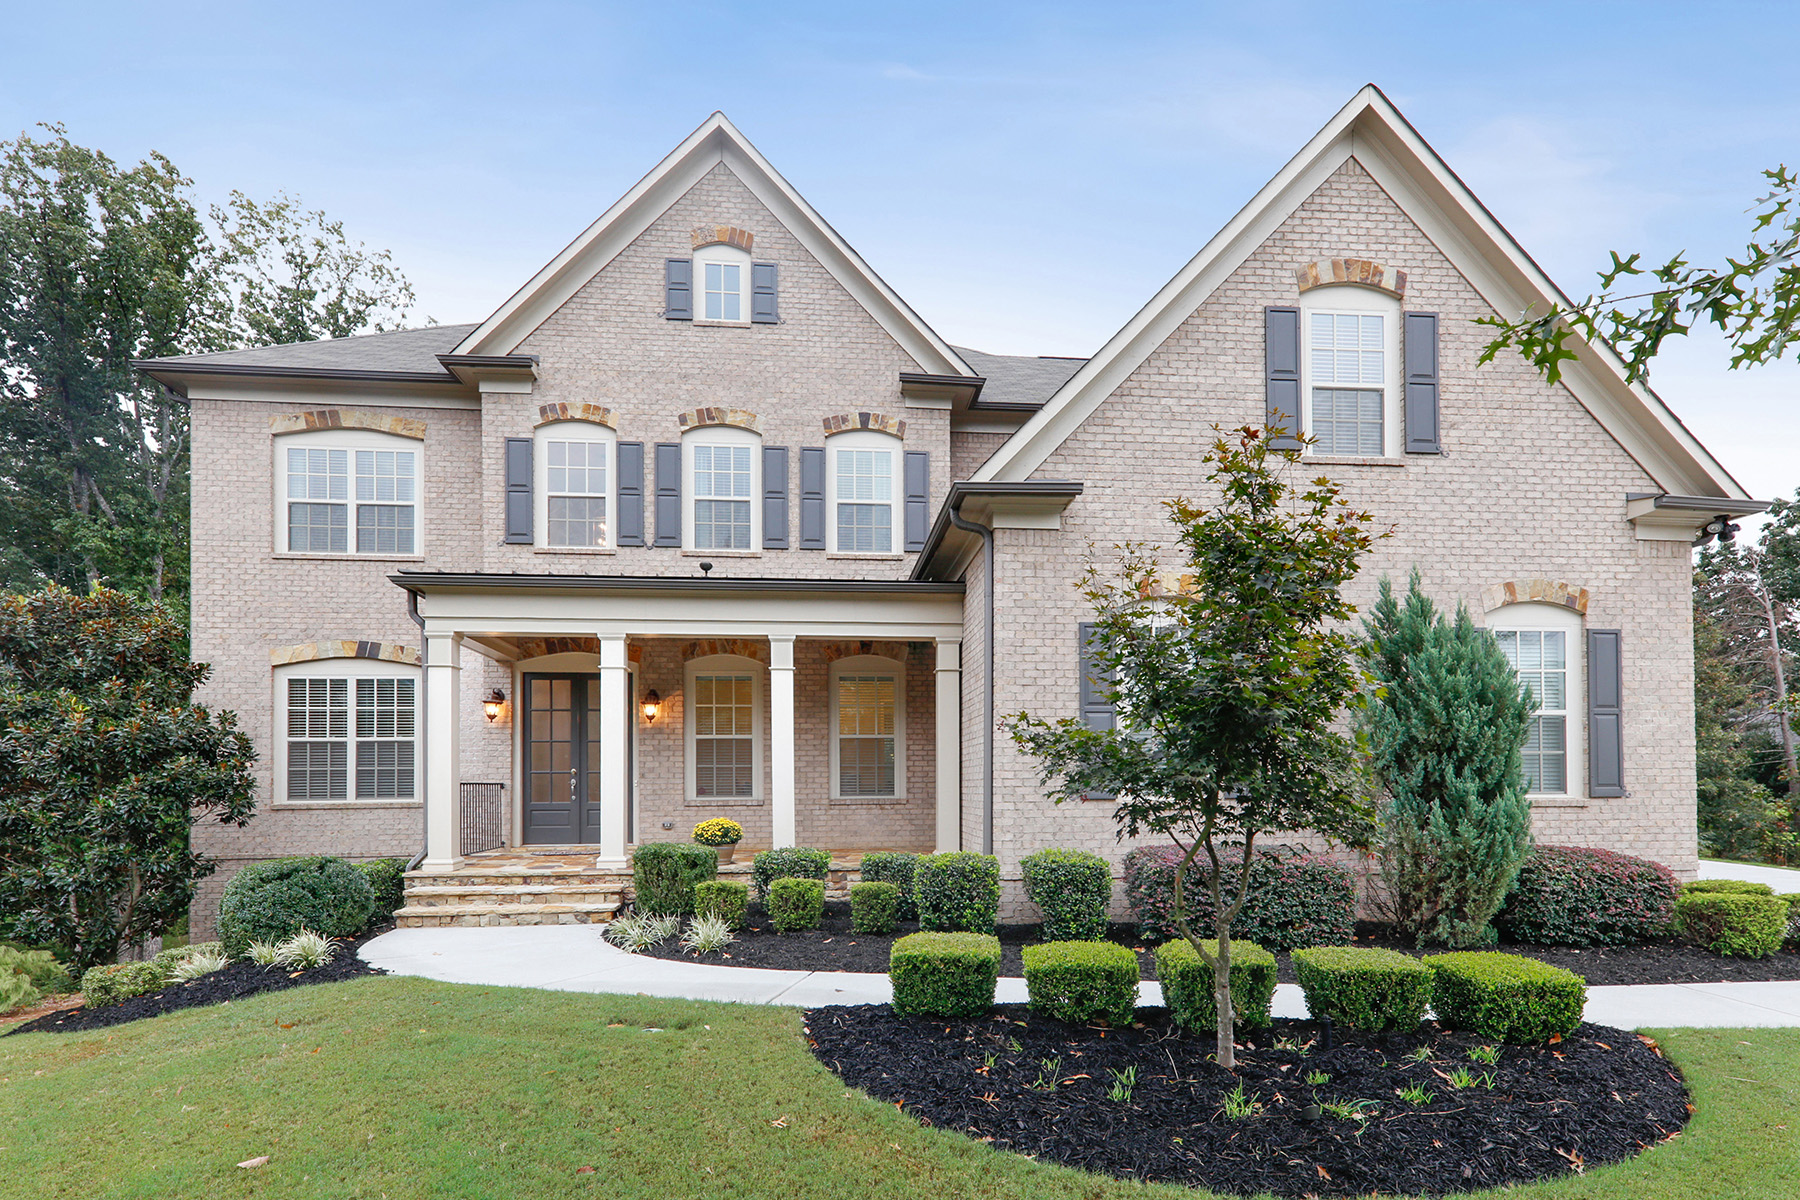 Single Family Homes for Sale at Beautiful Brick Executive Home on Private Cul-de-sac 1614 Newstone St, Lawrenceville, Georgia 30043 United States